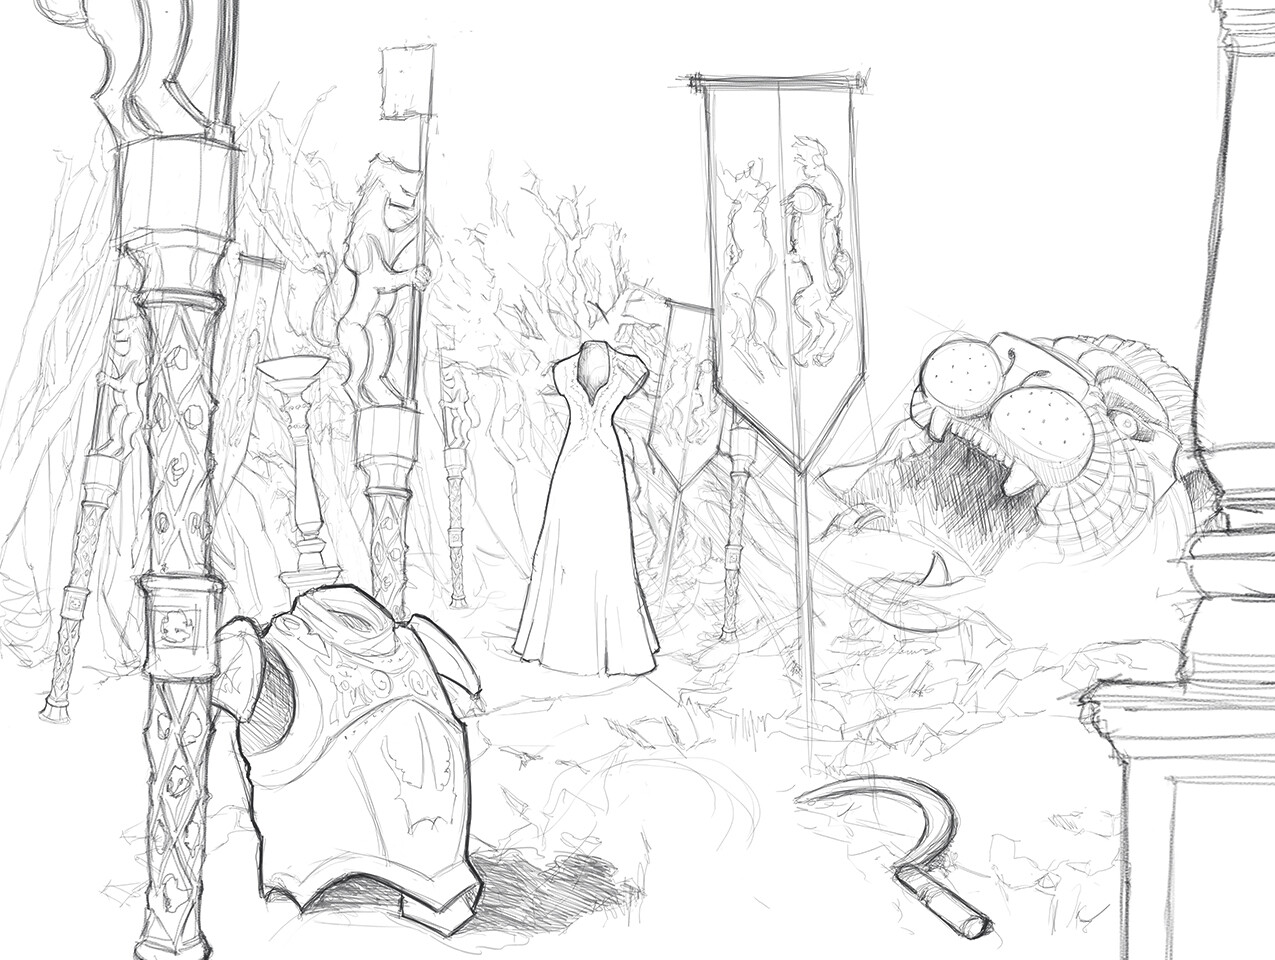 Work in progress leading to the final scene